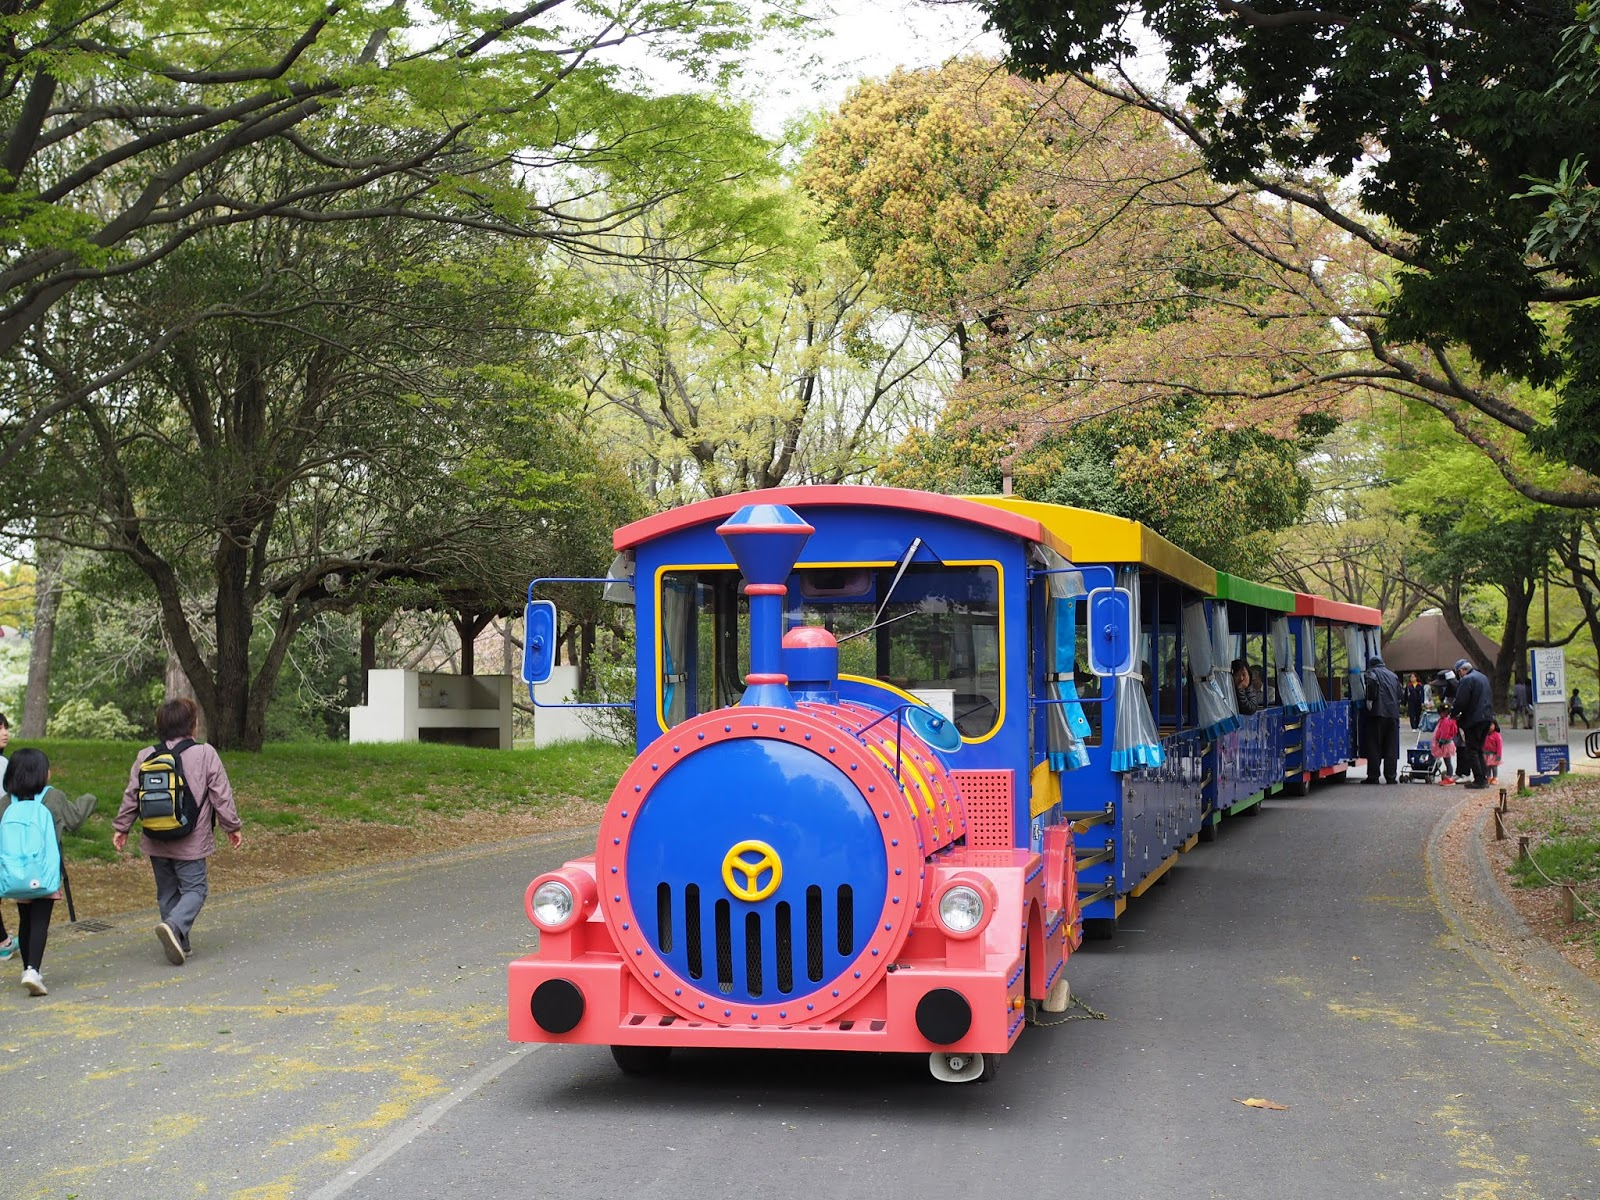 Train at Showa Kinen Park